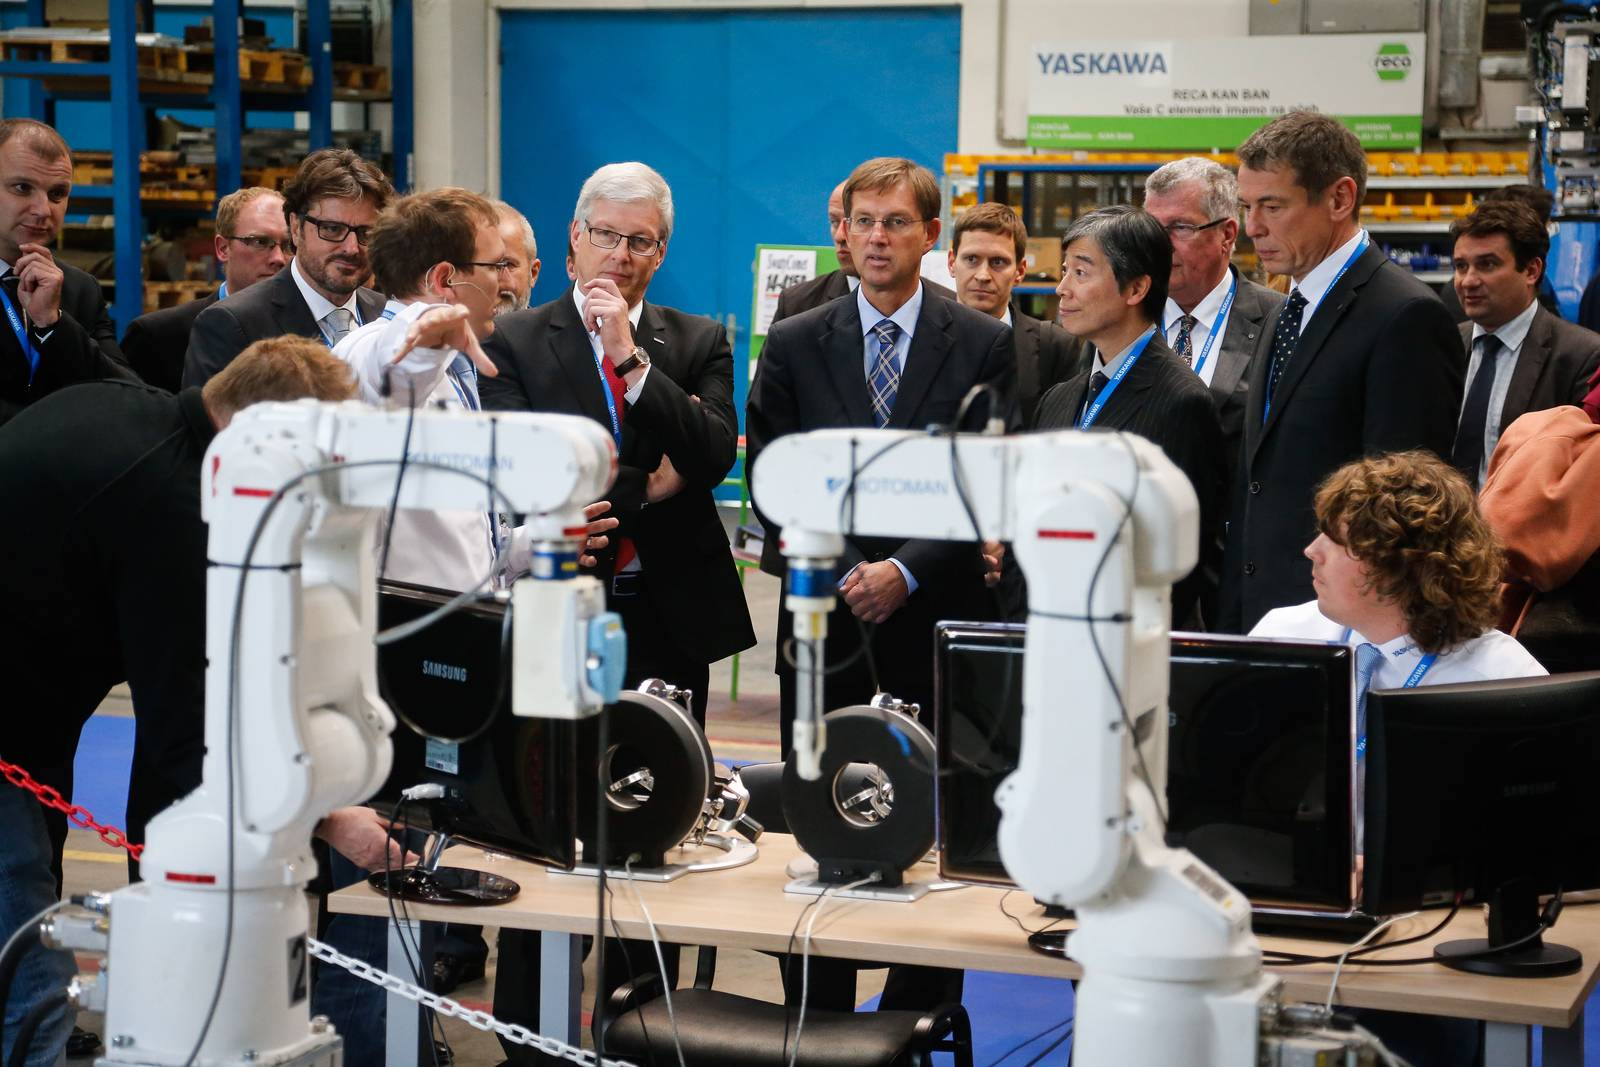 Slovenia backs Yaskawa with €6 million